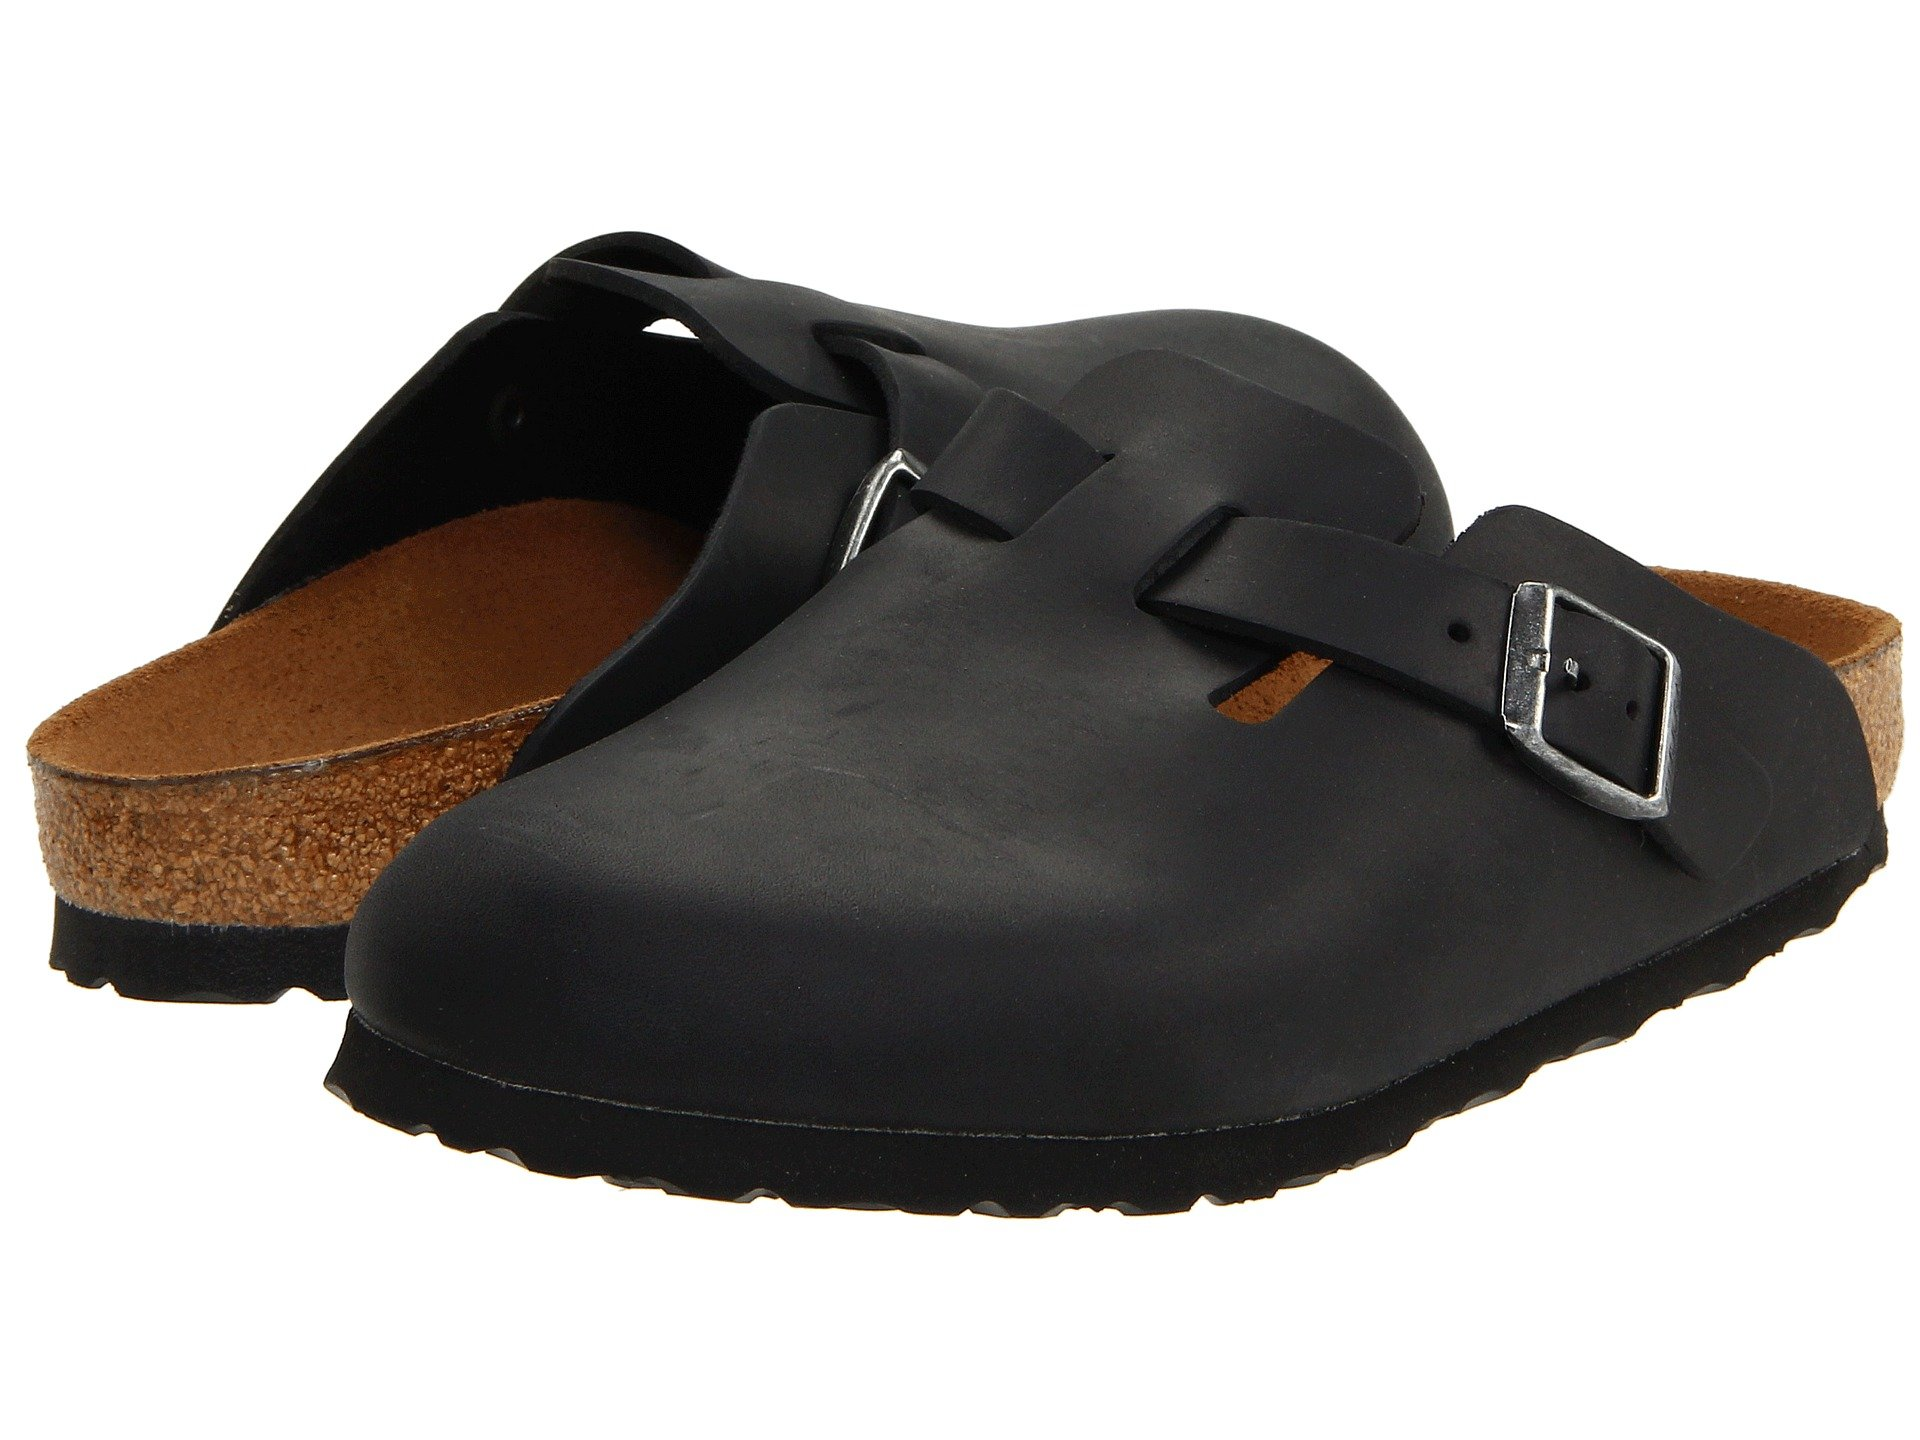 3f173f69670 Women's Birkenstock Clogs & Mules + FREE SHIPPING | Shoes | Zappos.com